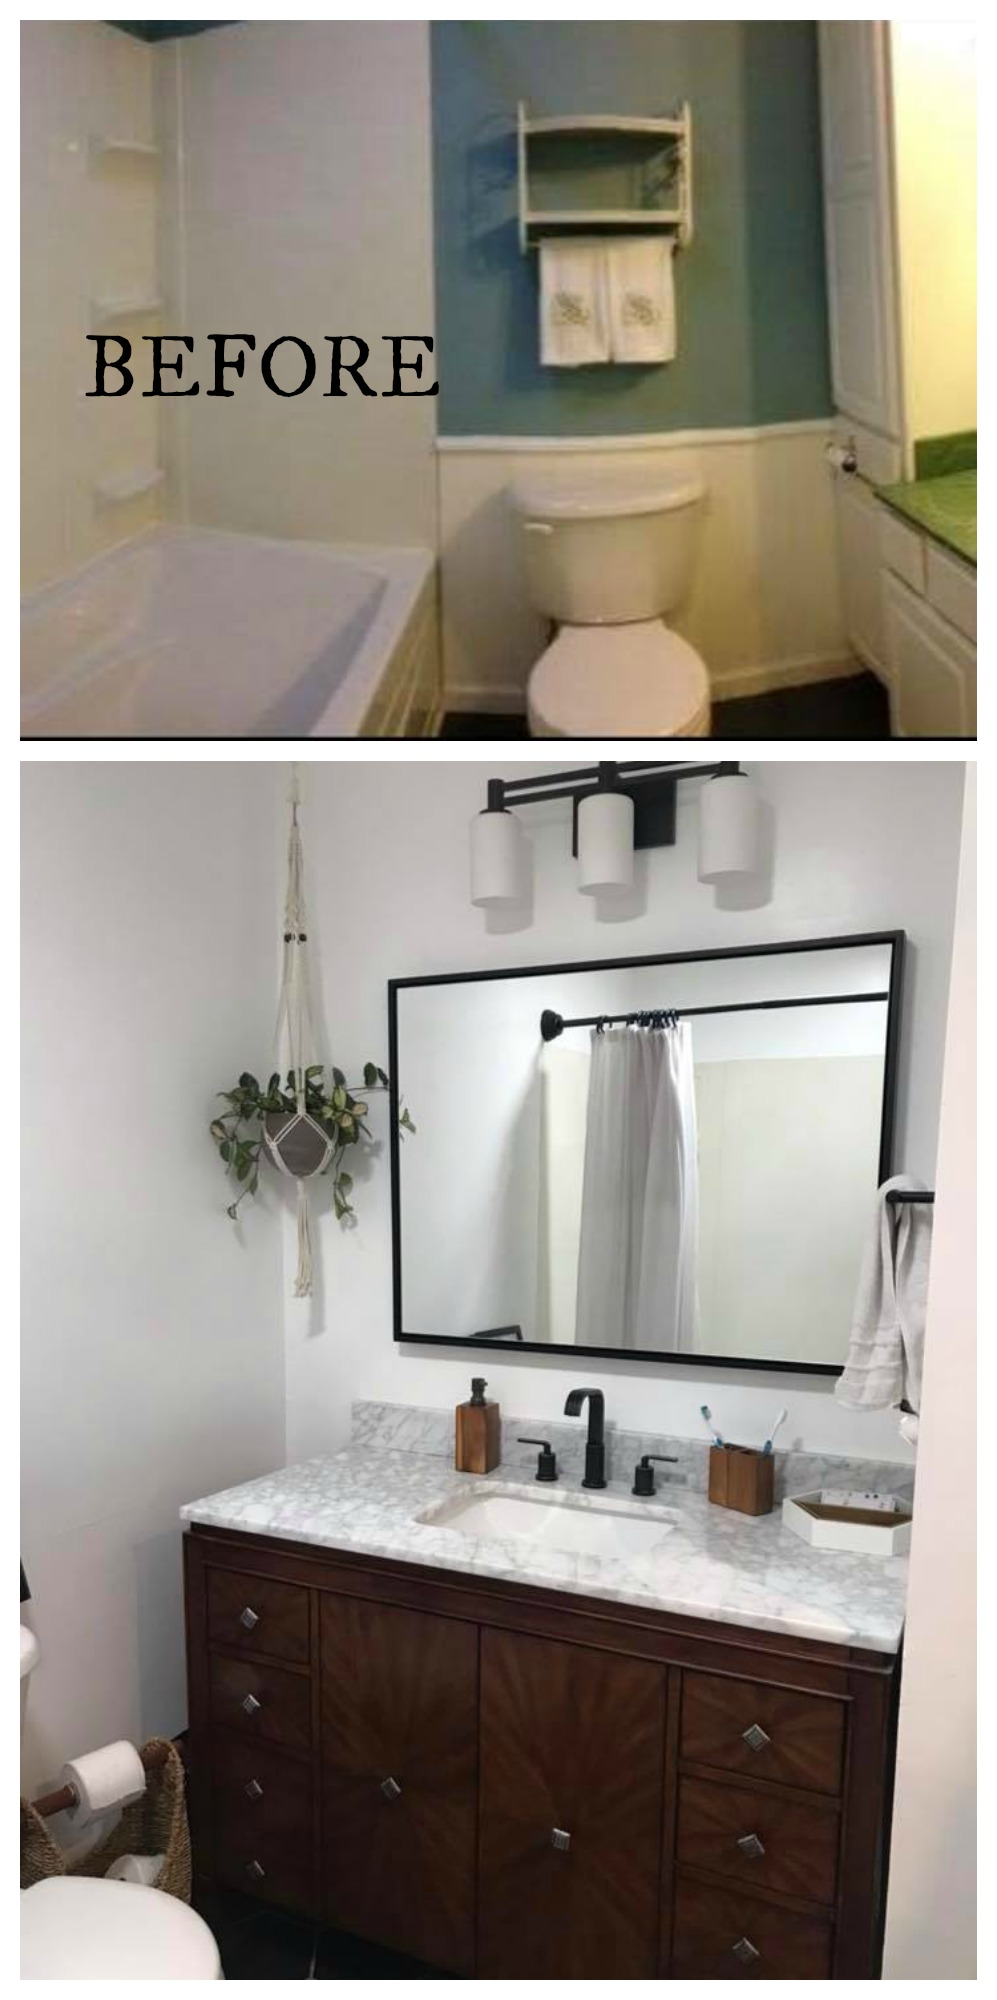 Fantastic 20 Bathroom Makeovers Before And Afters Nesting With Grace Best Image Libraries Thycampuscom